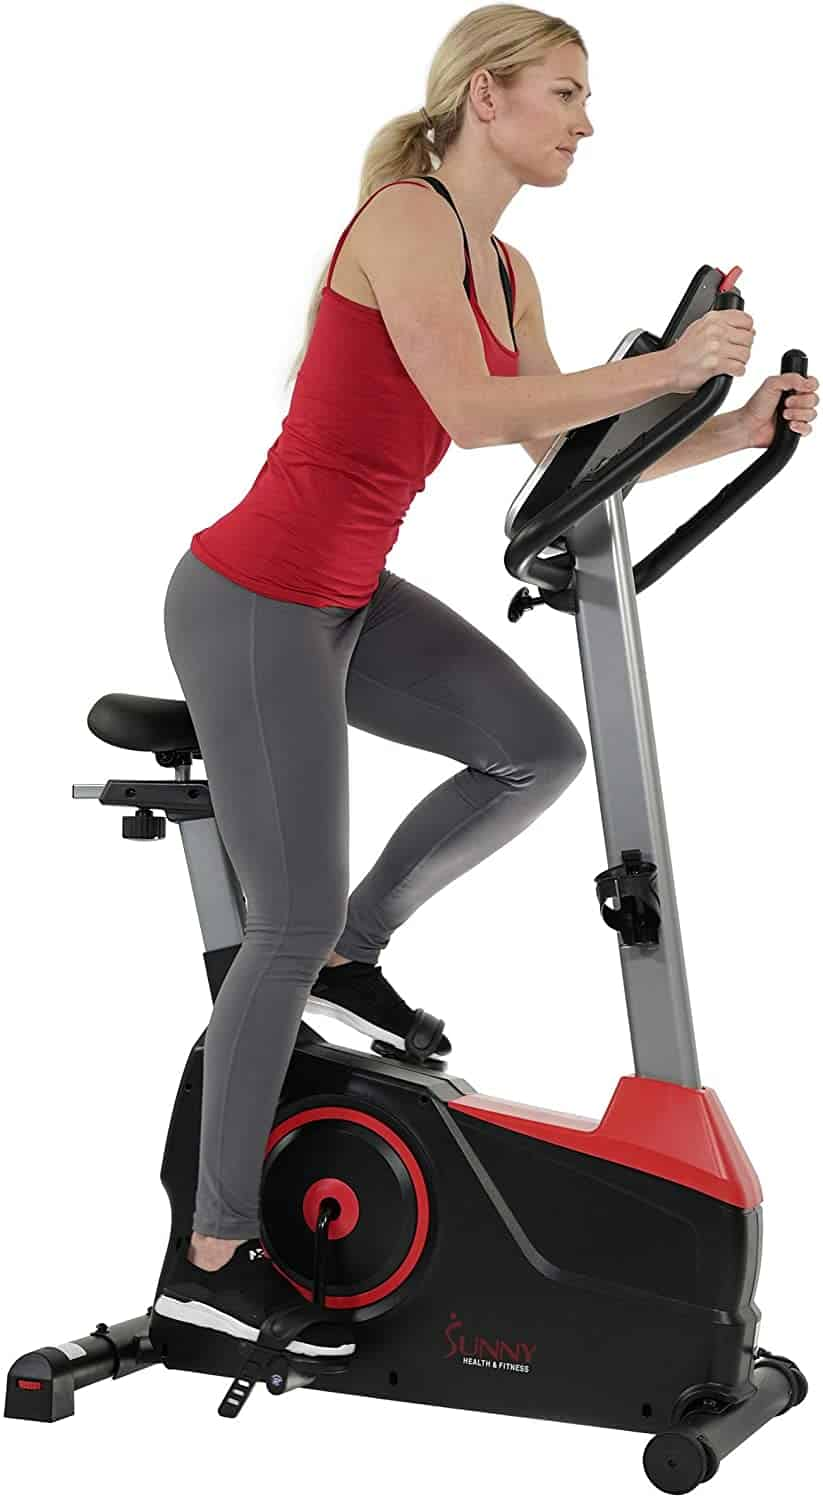 A lady is exercising with the Sunny Health & Fitness Evo Fit SF-B2969 Upright Bike